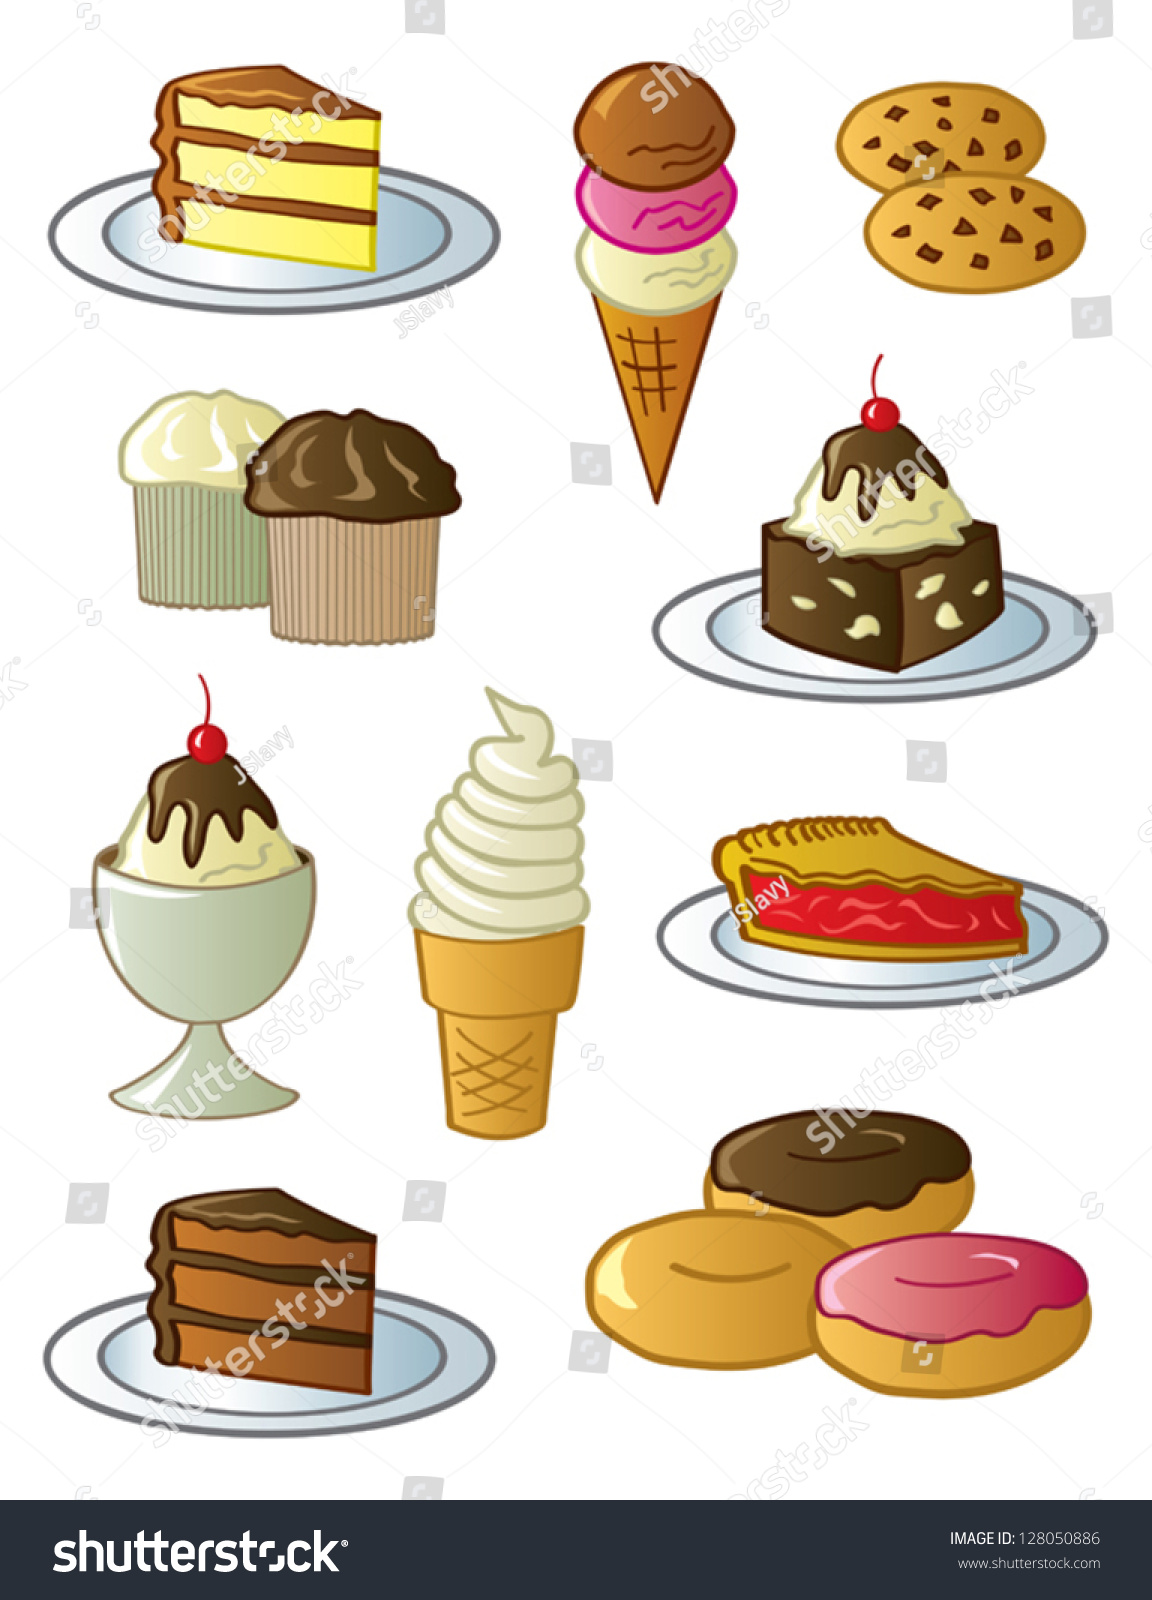 how to take pictures of desserts